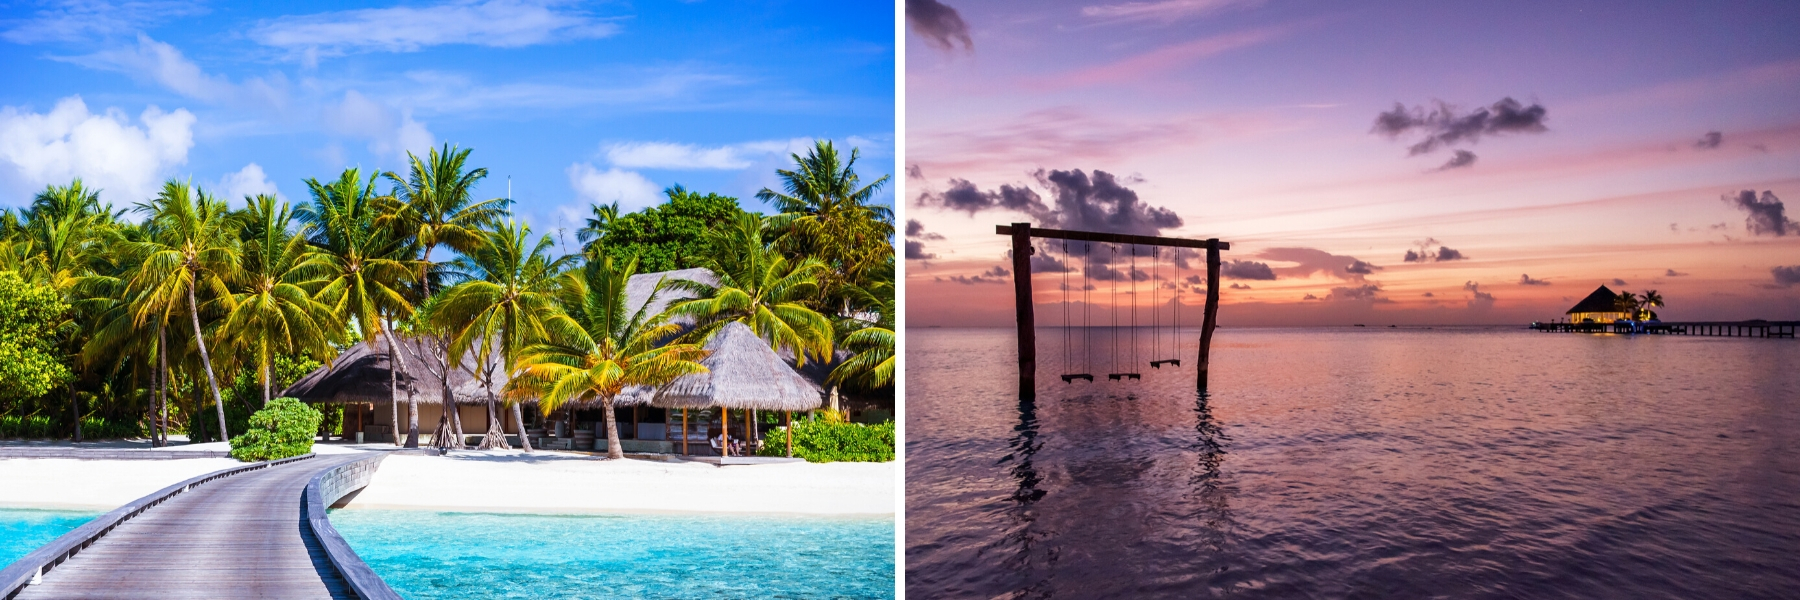 Unforgettable Cruises, Maldives